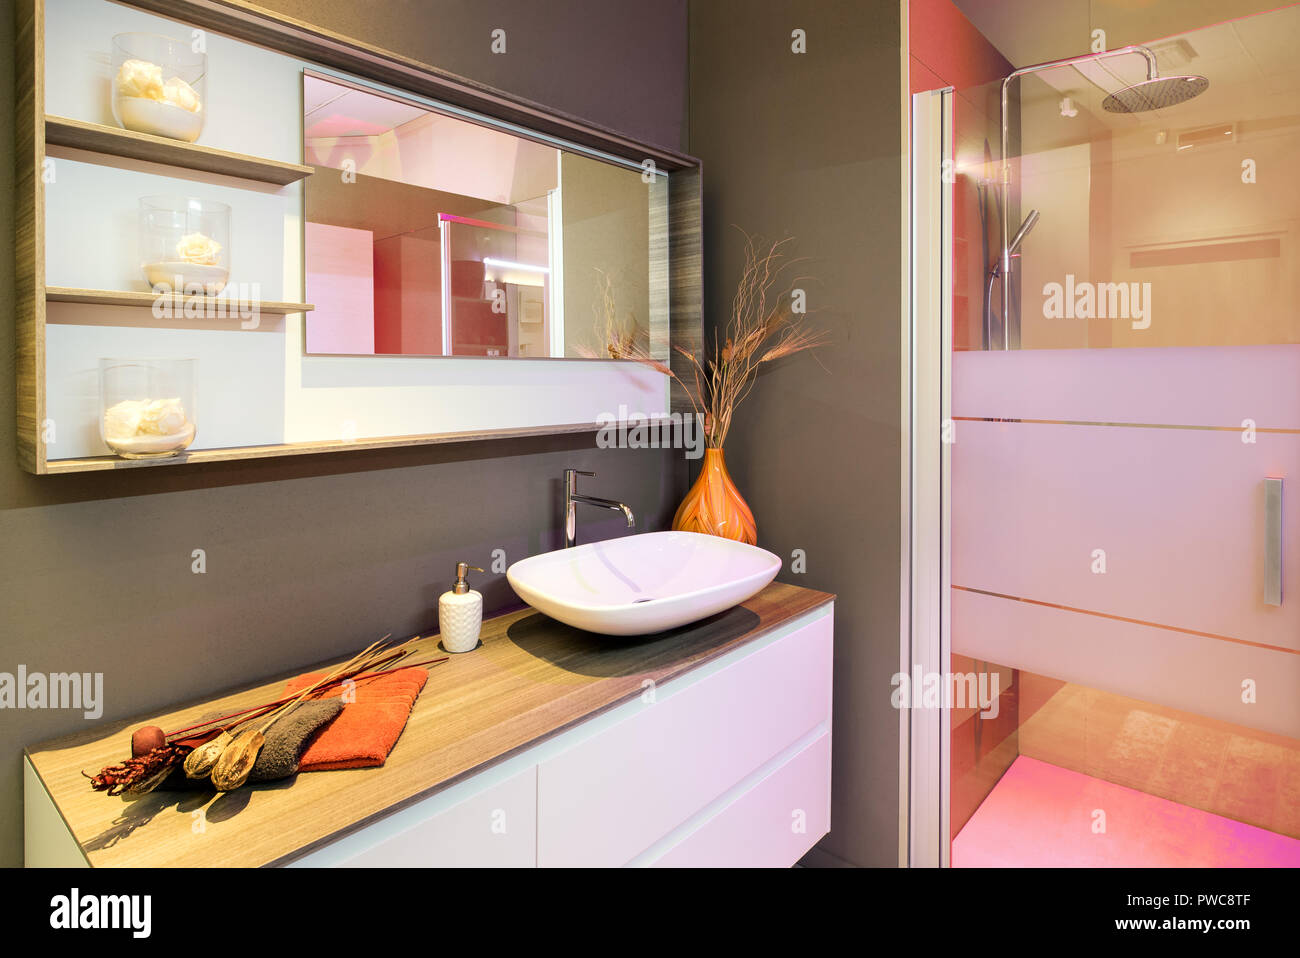 Bathroom interior with hand basin and shower - Stock Image